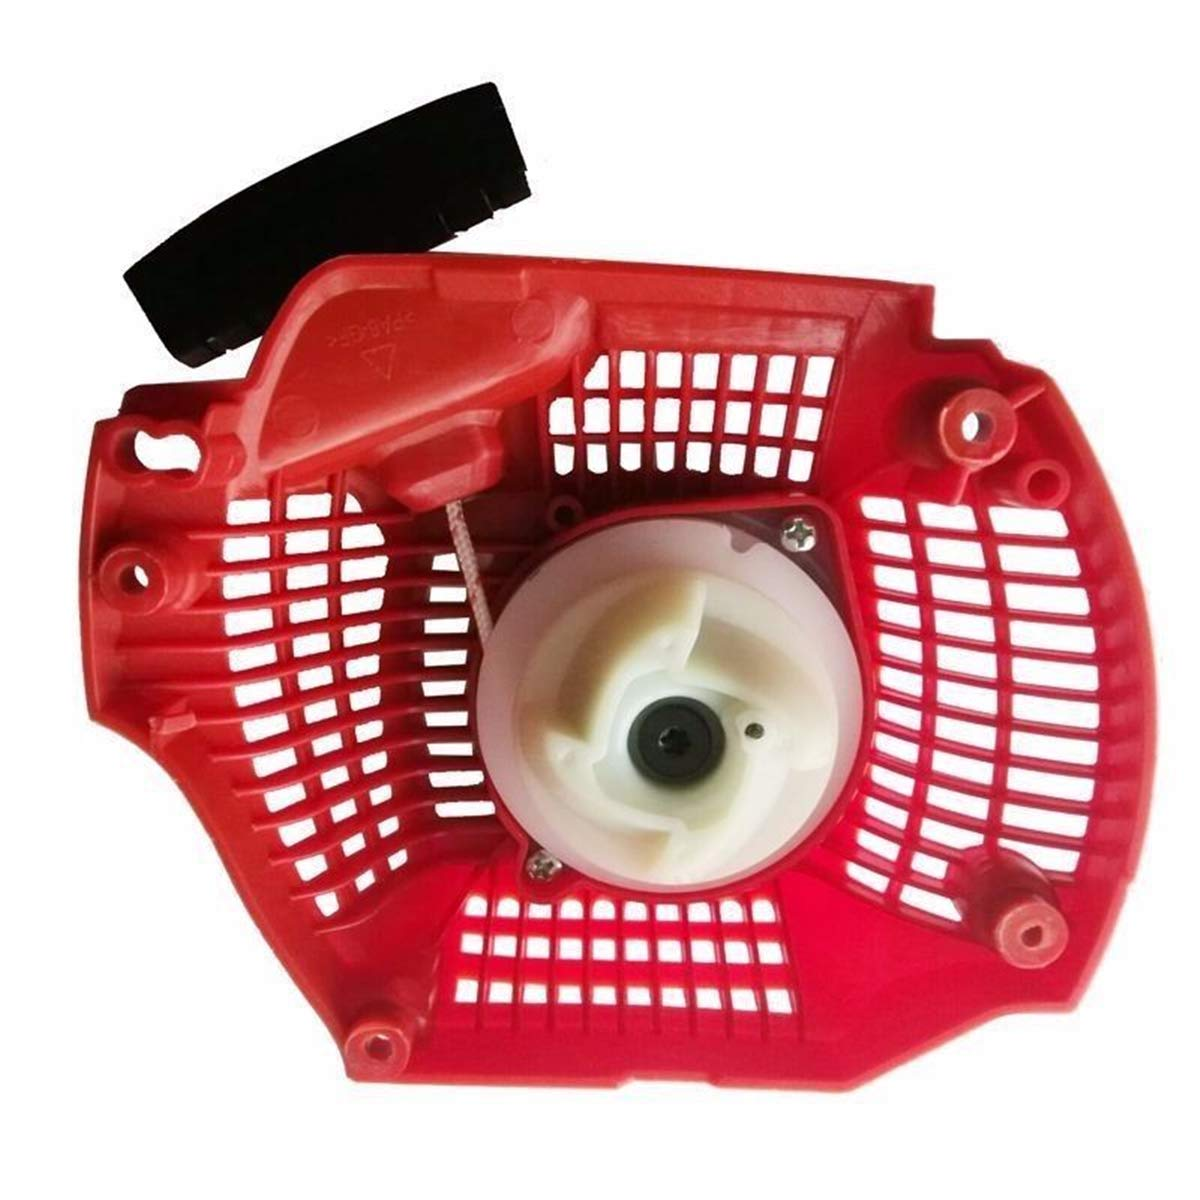 Notos 504597002 Pull Rewind Recoil Starter Fit for Husqvarna 435 435E 440 440E Chiansaw by Notos